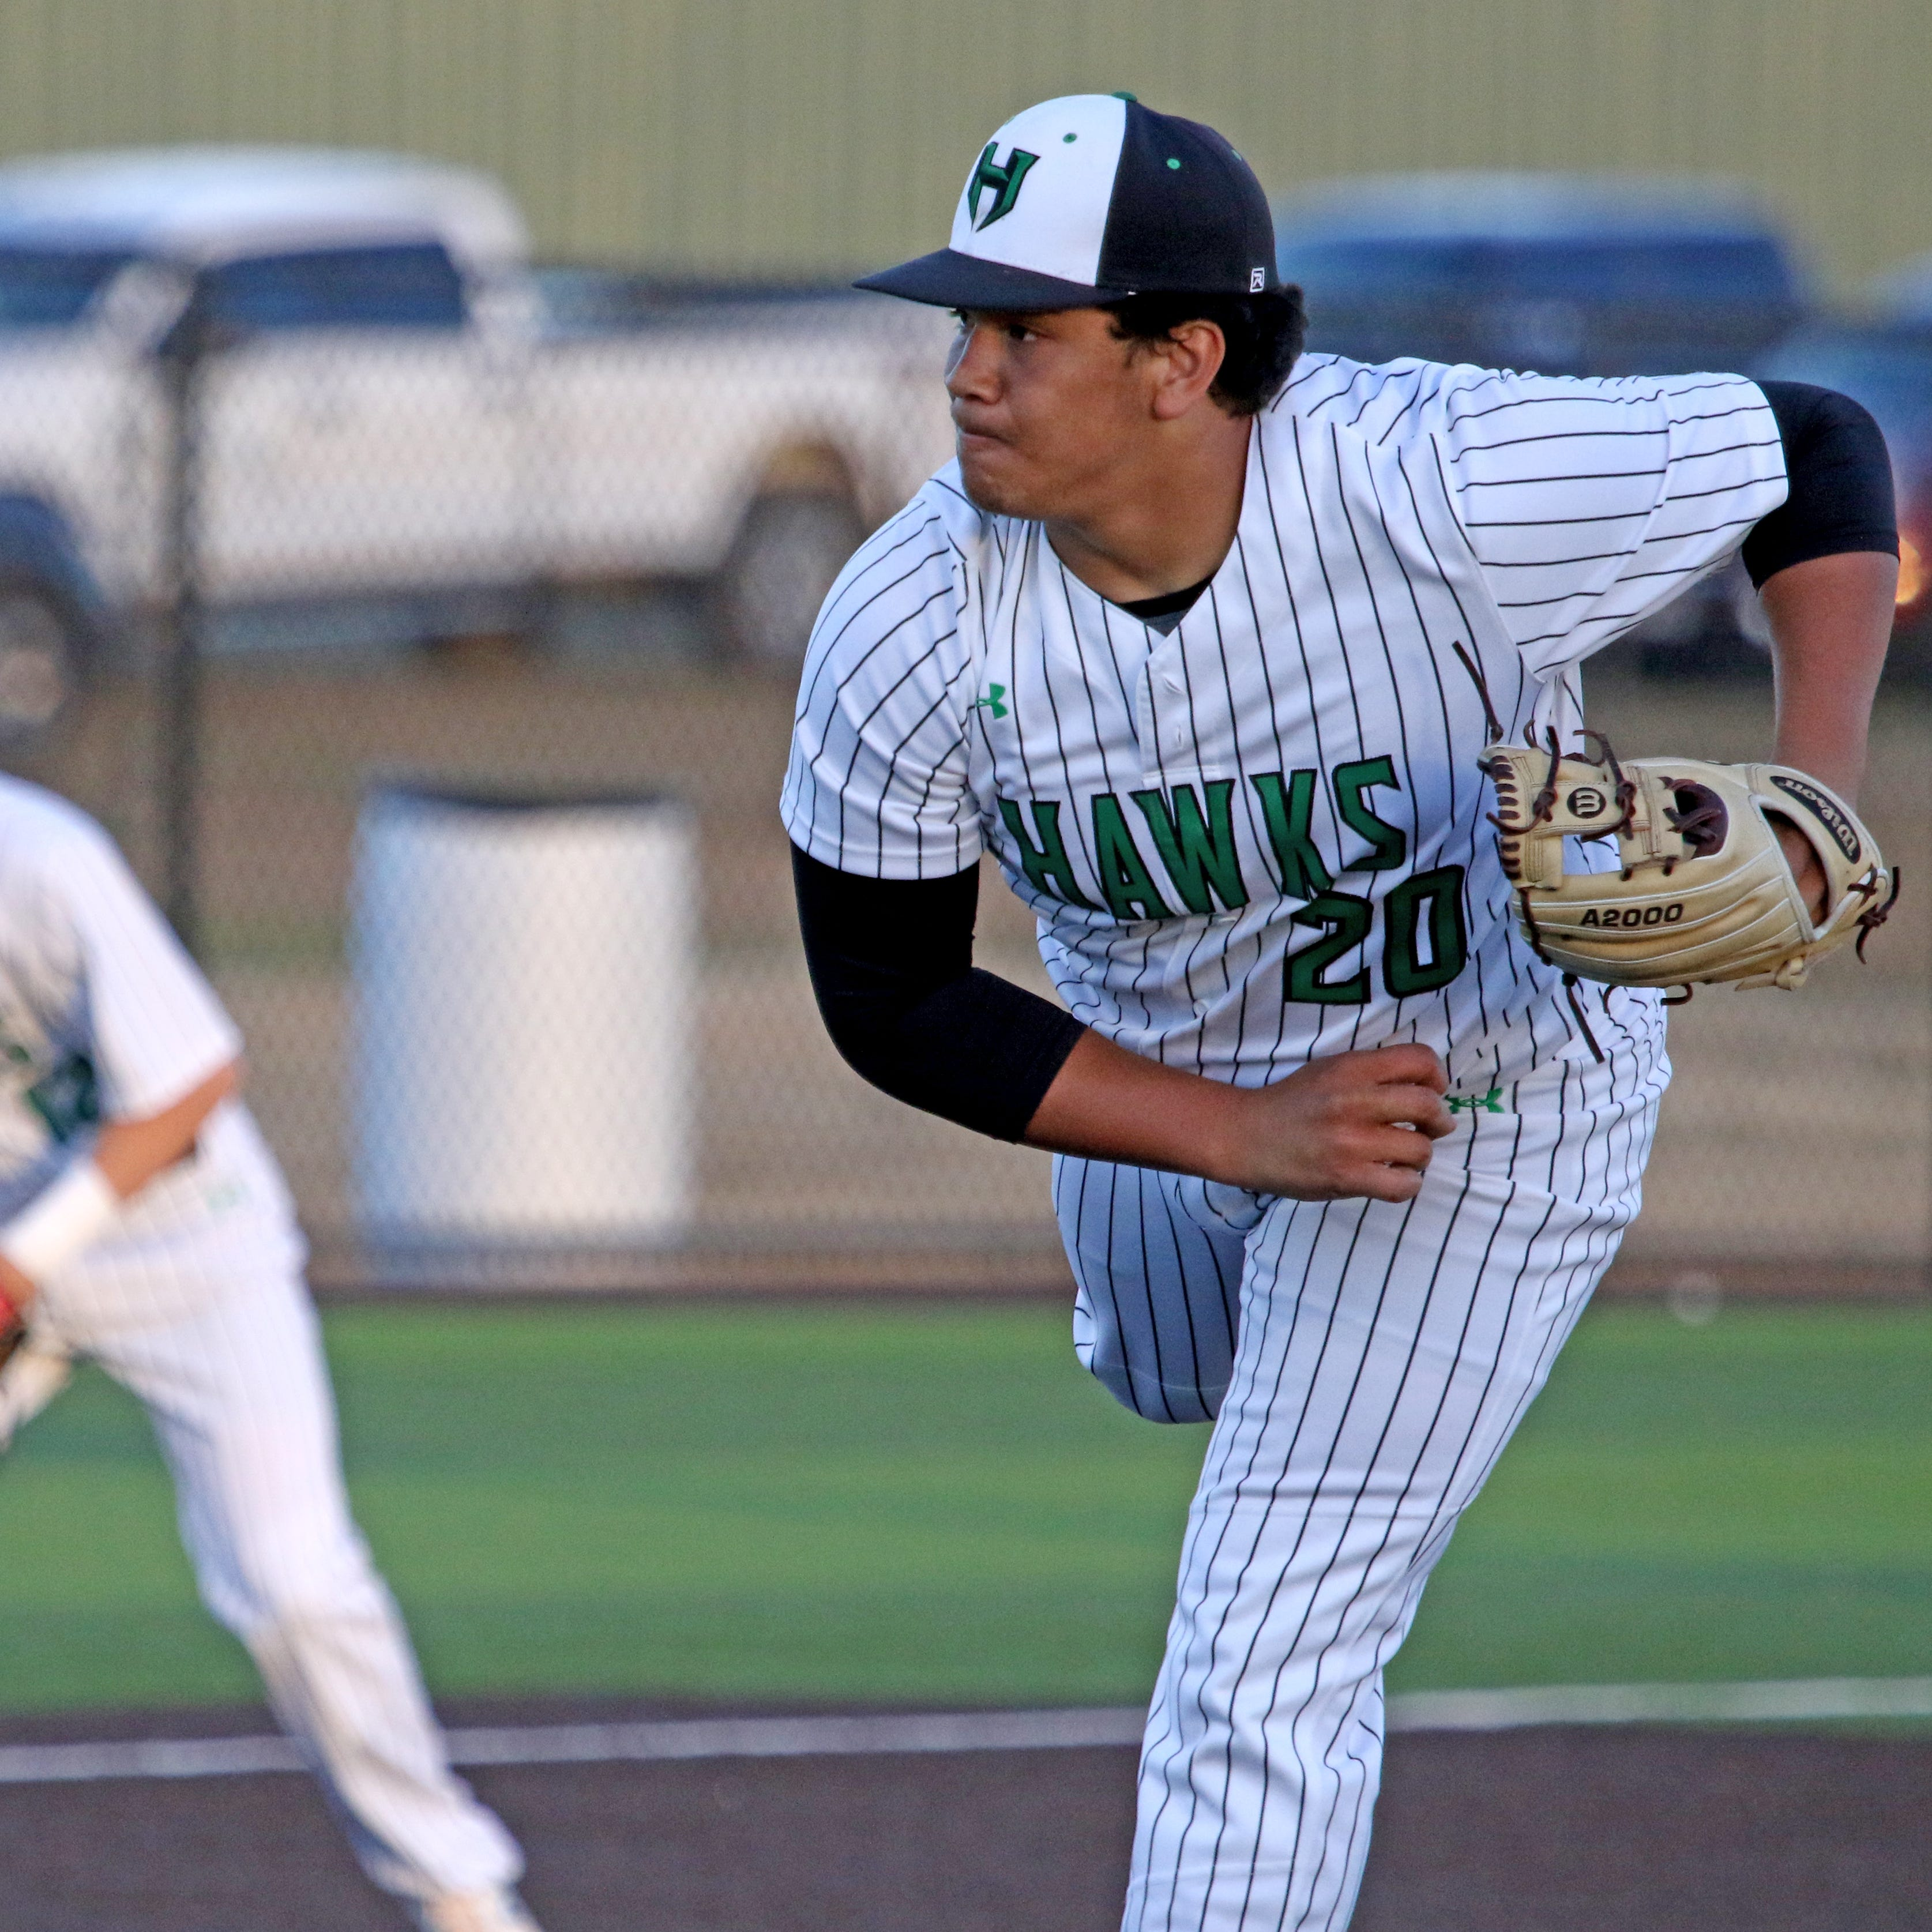 High school baseball leaders (through March 26)